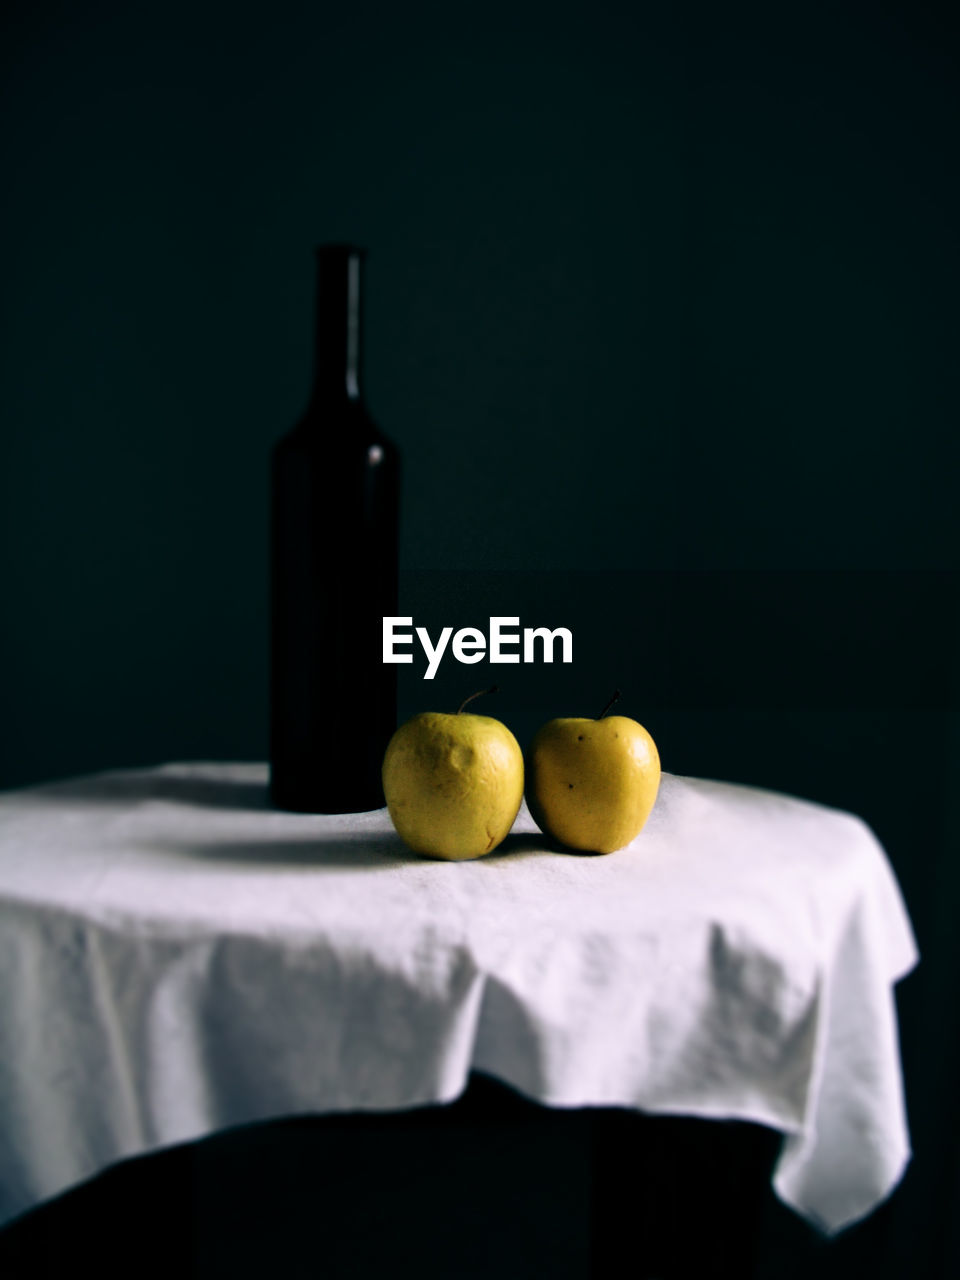 food and drink, still life, no people, indoors, studio shot, fruit, food, black background, bottle, close-up, freshness, container, yellow, table, healthy eating, copy space, refreshment, alcohol, drink, wellbeing